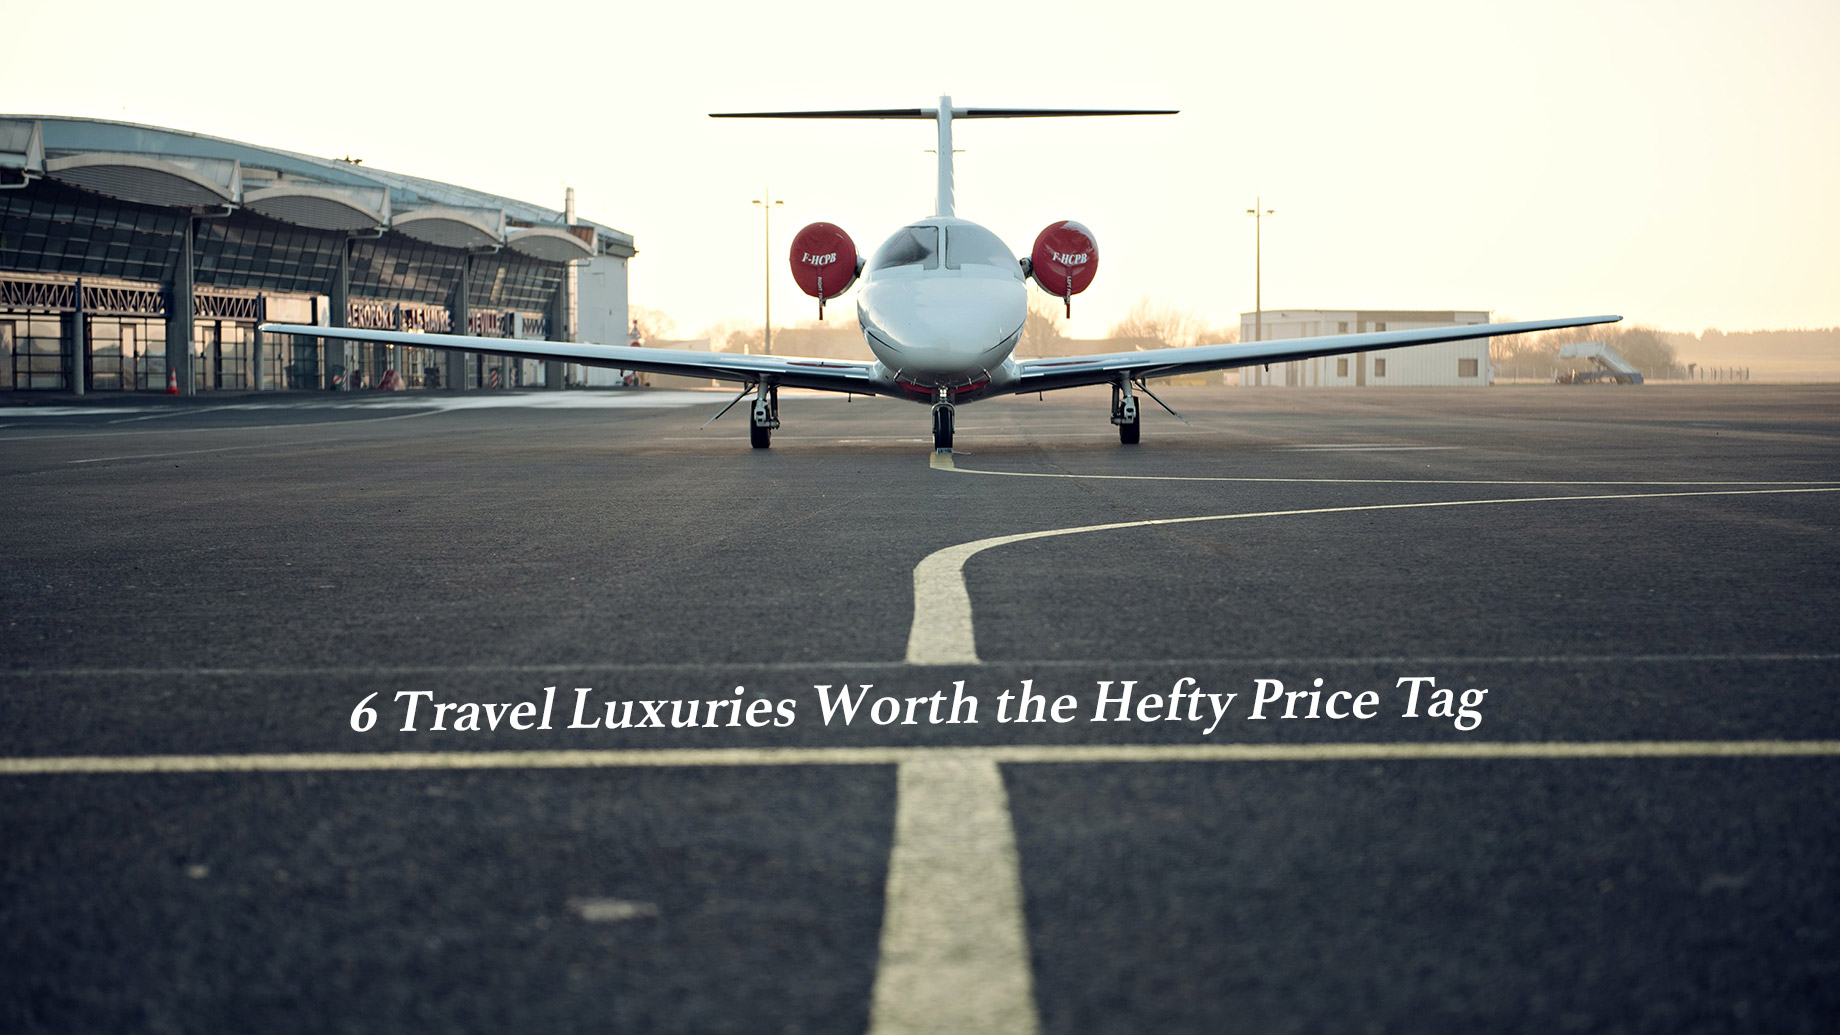 6 Travel Luxuries Worth the Hefty Price Tag